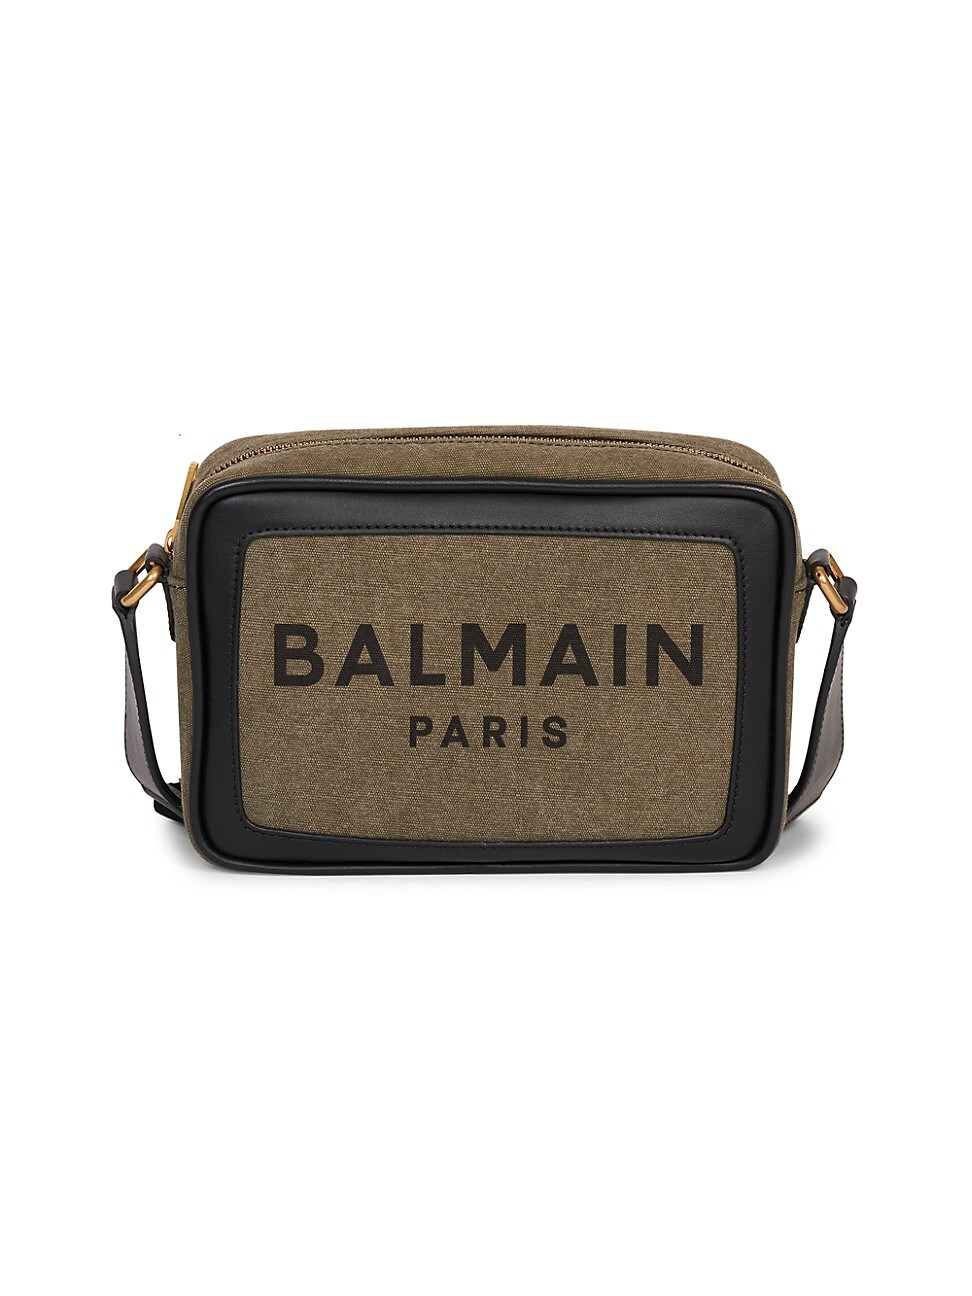 Balmain WOMEN'S B-ARMY LEATHER-TRIMMED CANVAS CAMERA BAG